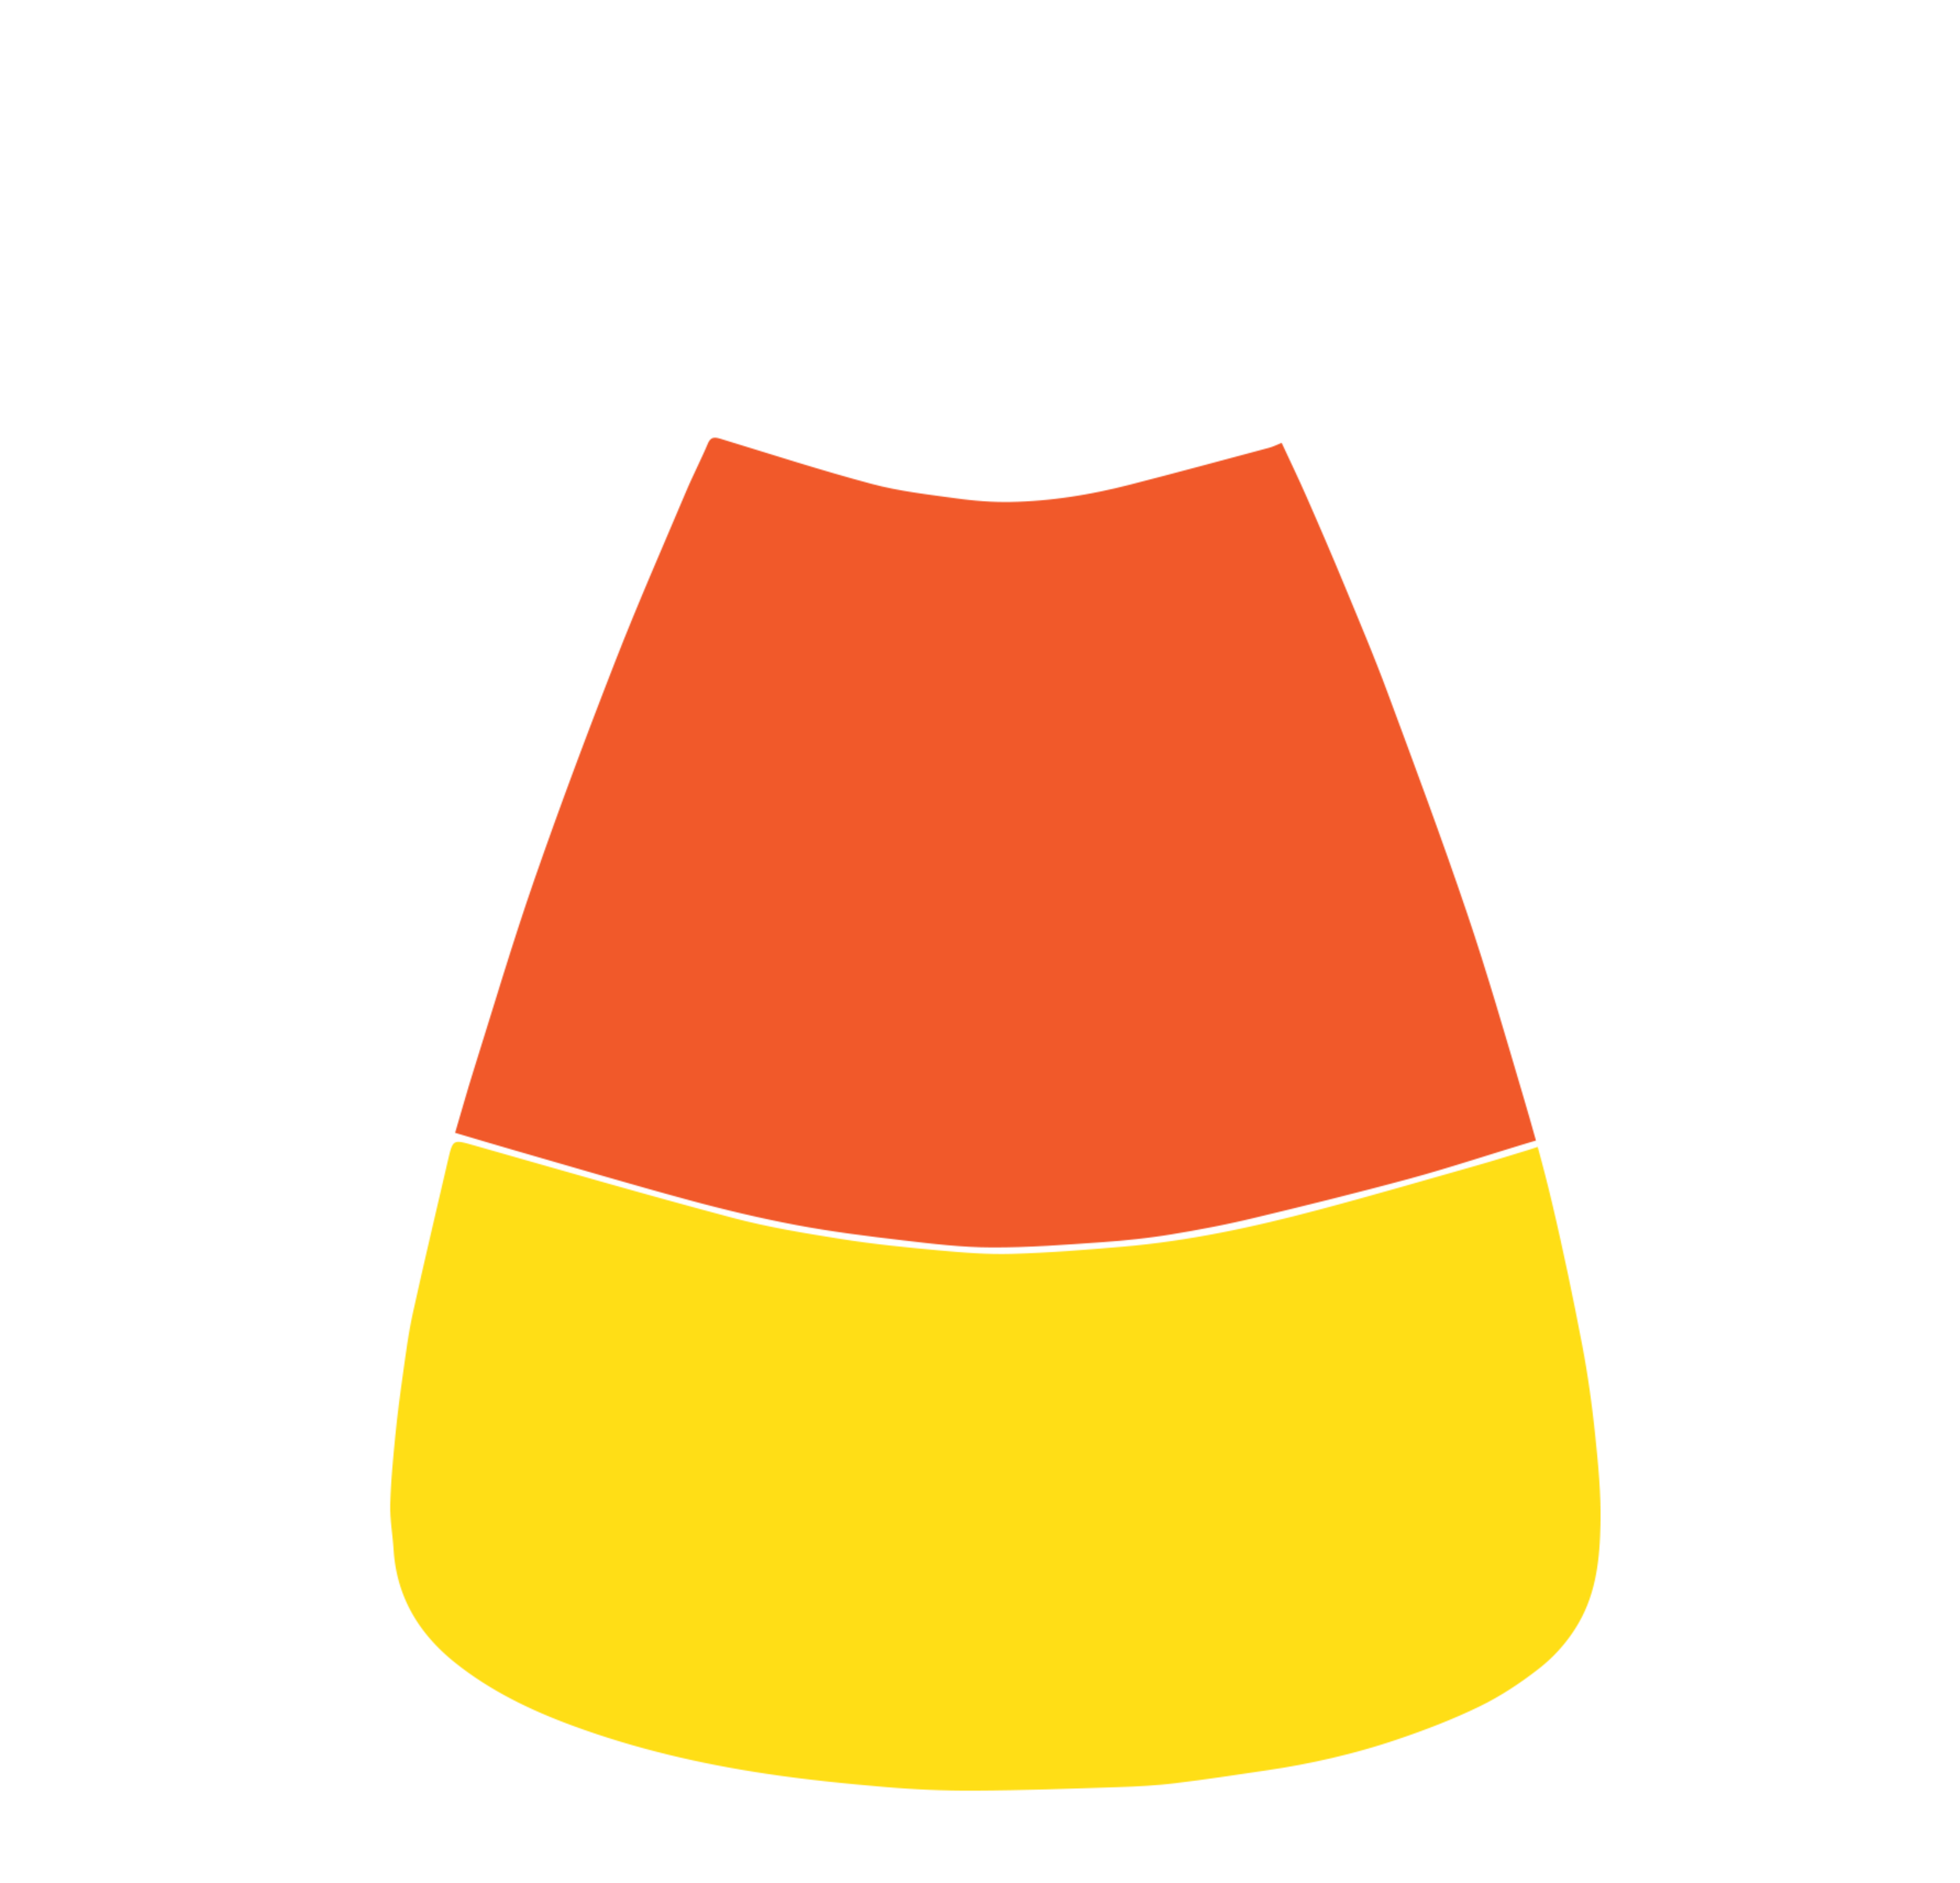 Candy Corn Clip Art | The Teehive